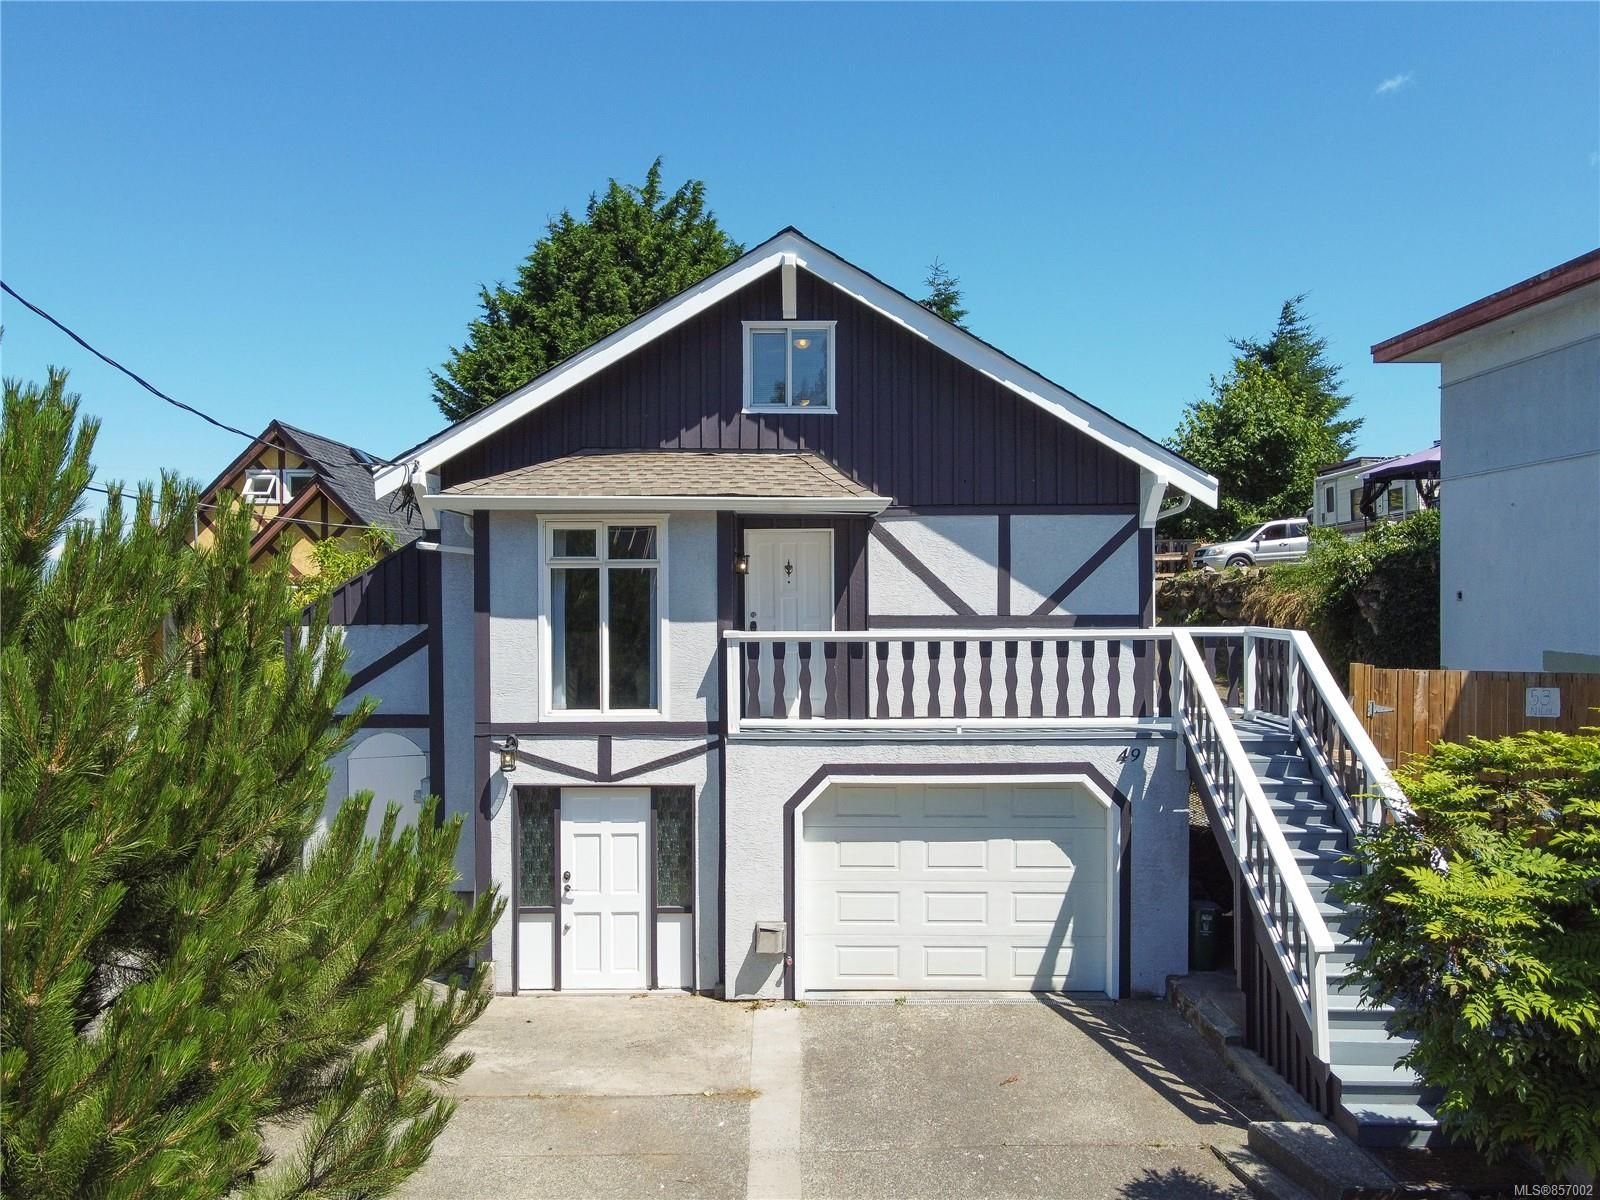 Main Photo: 49 Nicol St in : Na Old City House for sale (Nanaimo)  : MLS®# 857002